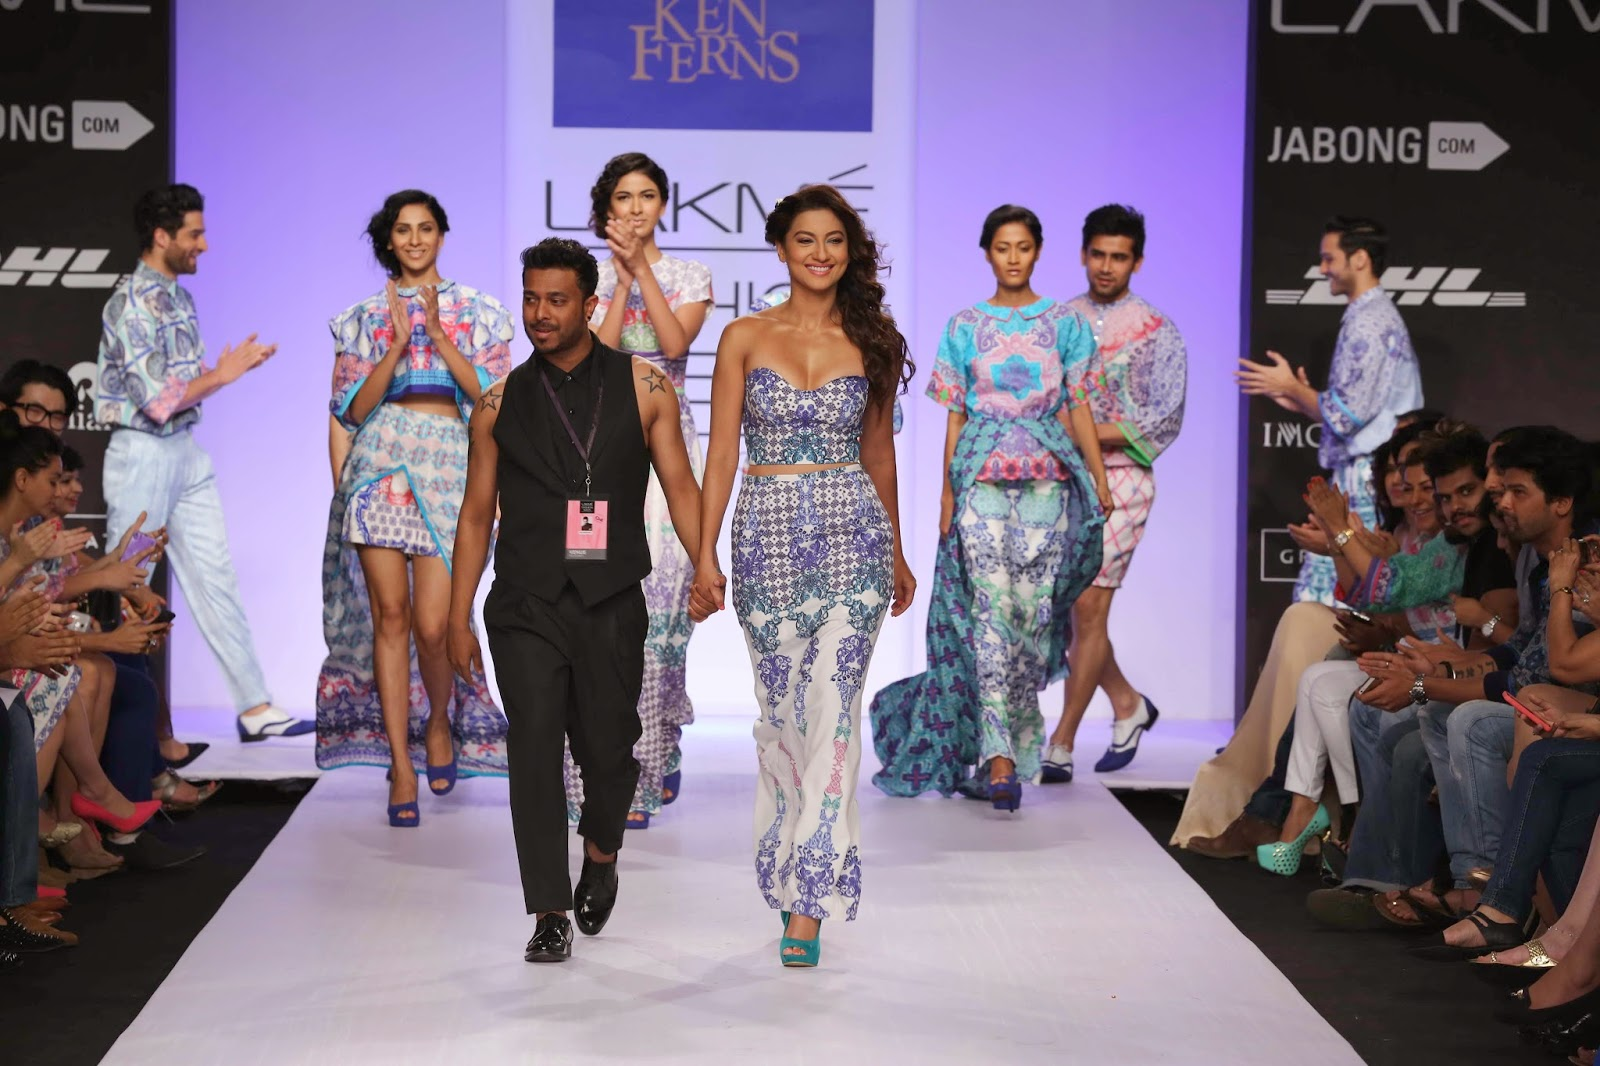 Selecting the perfect showstopper, Ken had the very sultry, sexy Gauhar Khan who slinked down the ramp in a printed corset worn with a long pencil skirt seductively slit at the back.